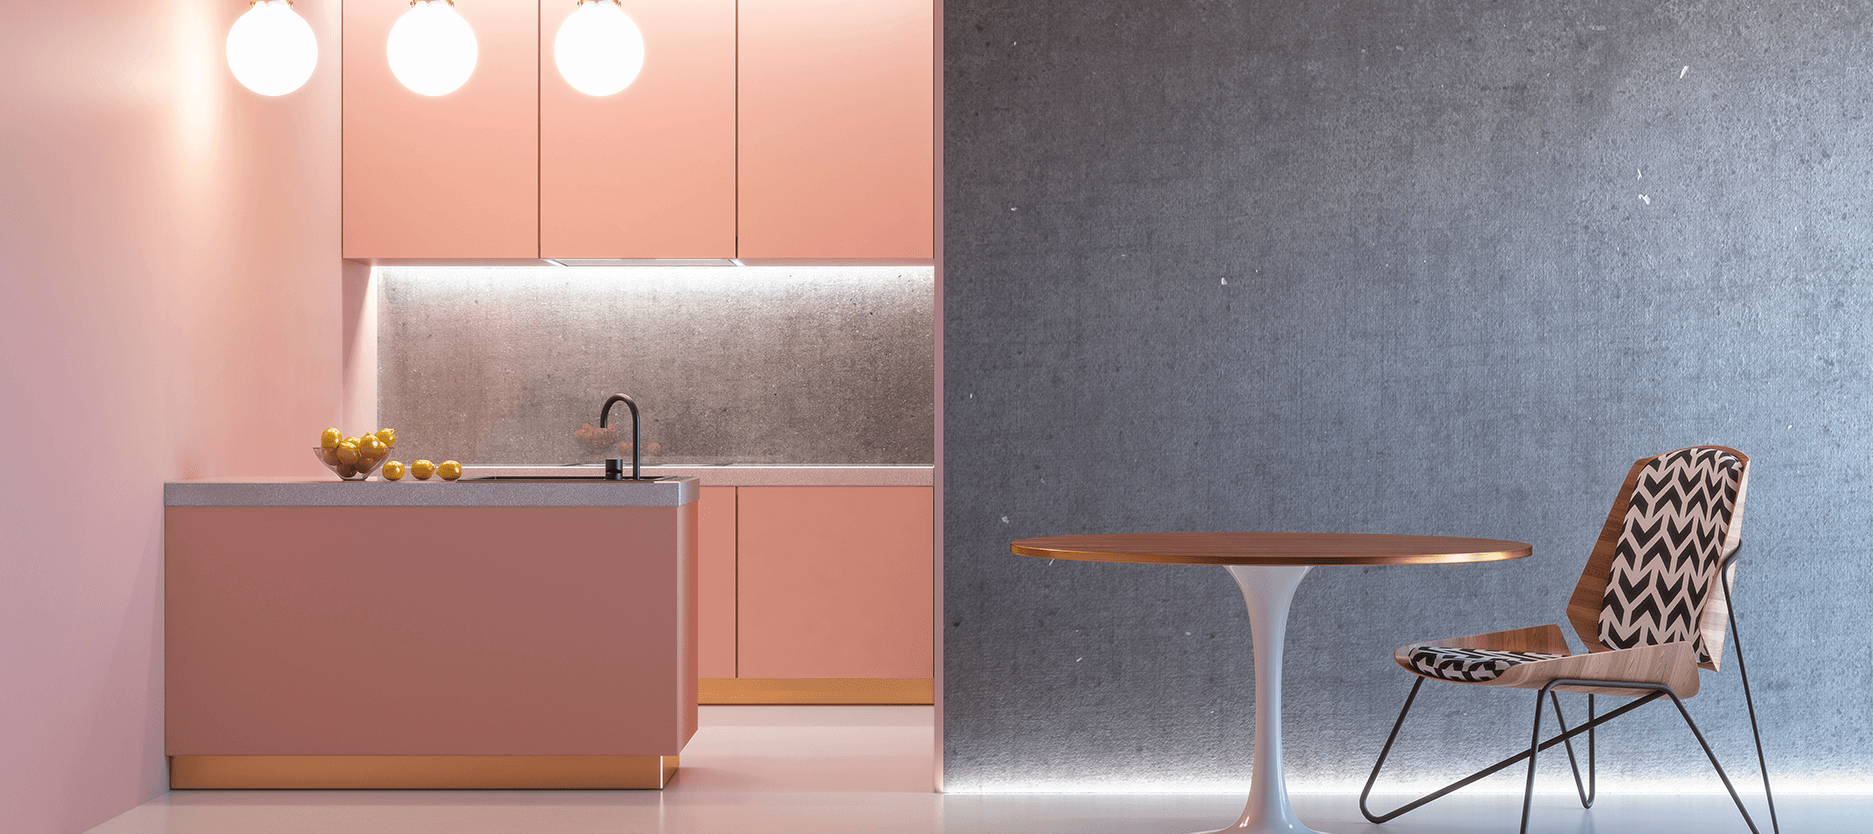 Colourful Kitchens Are Back! A Look at Some Classic Kitchen Design Trends